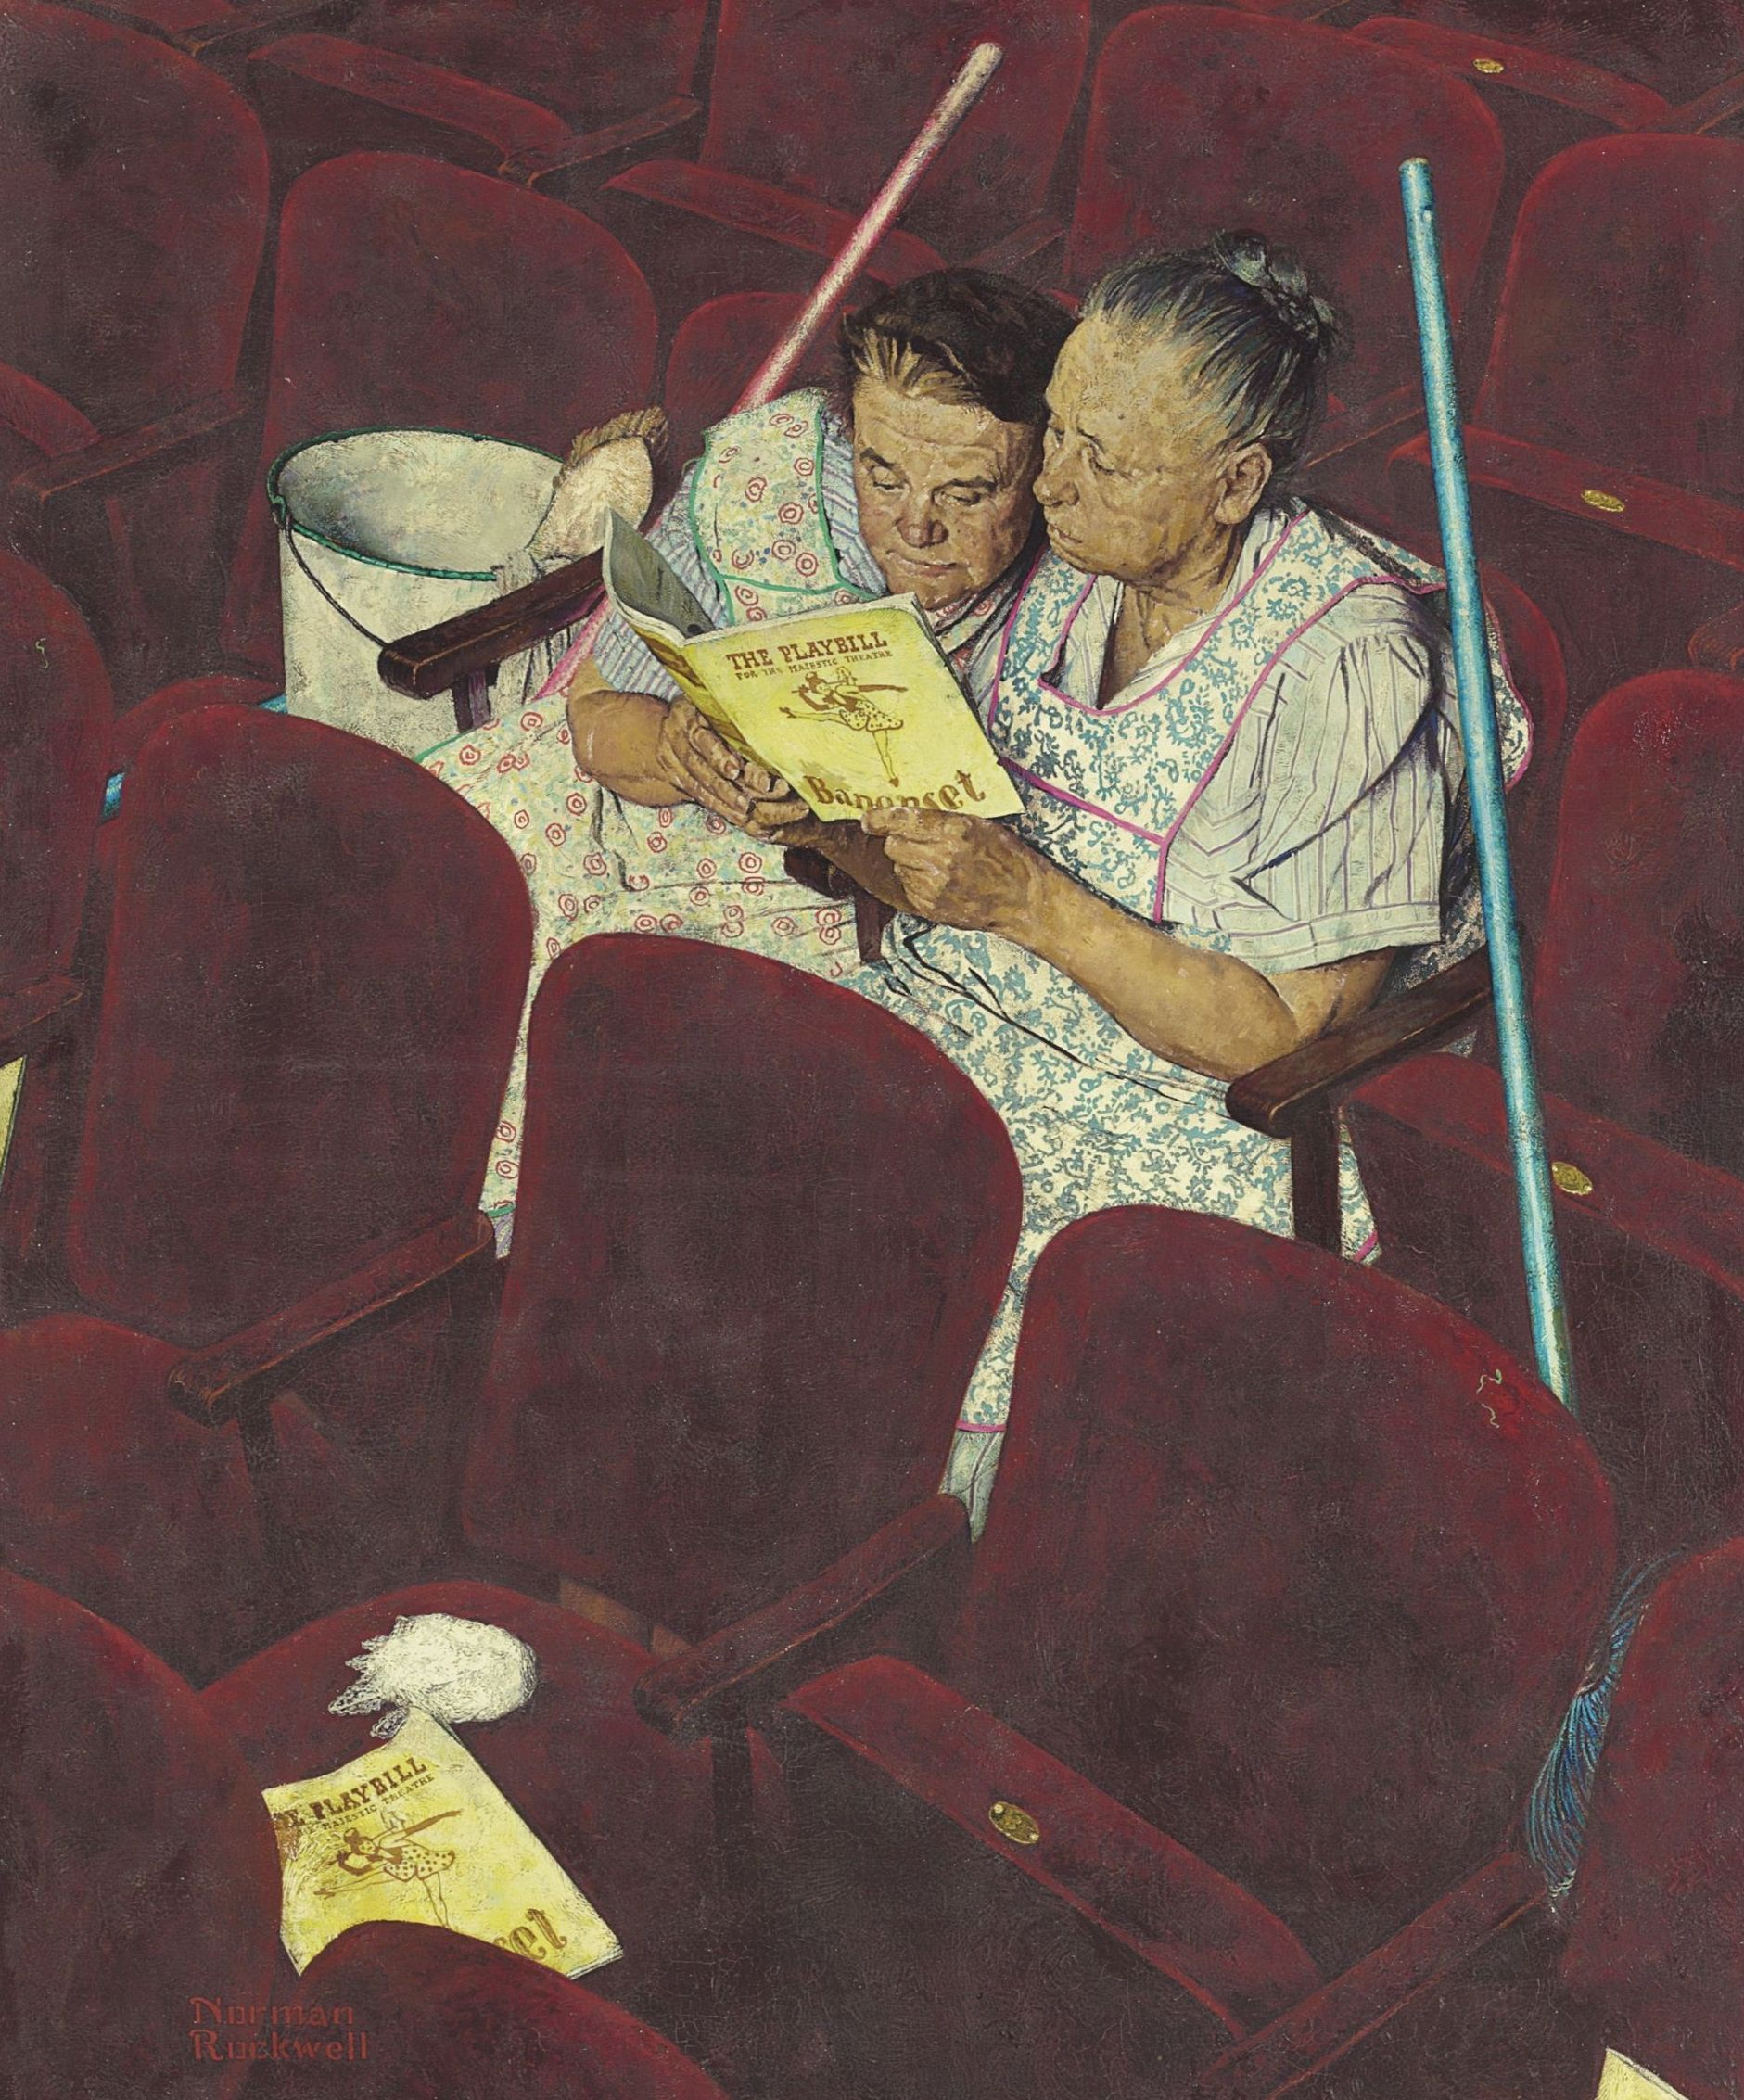 Norman Rockwell Charwomen in Theater (1946), dettaglio. ©SEPS_Curtis Publishing, Indianapolis, IN